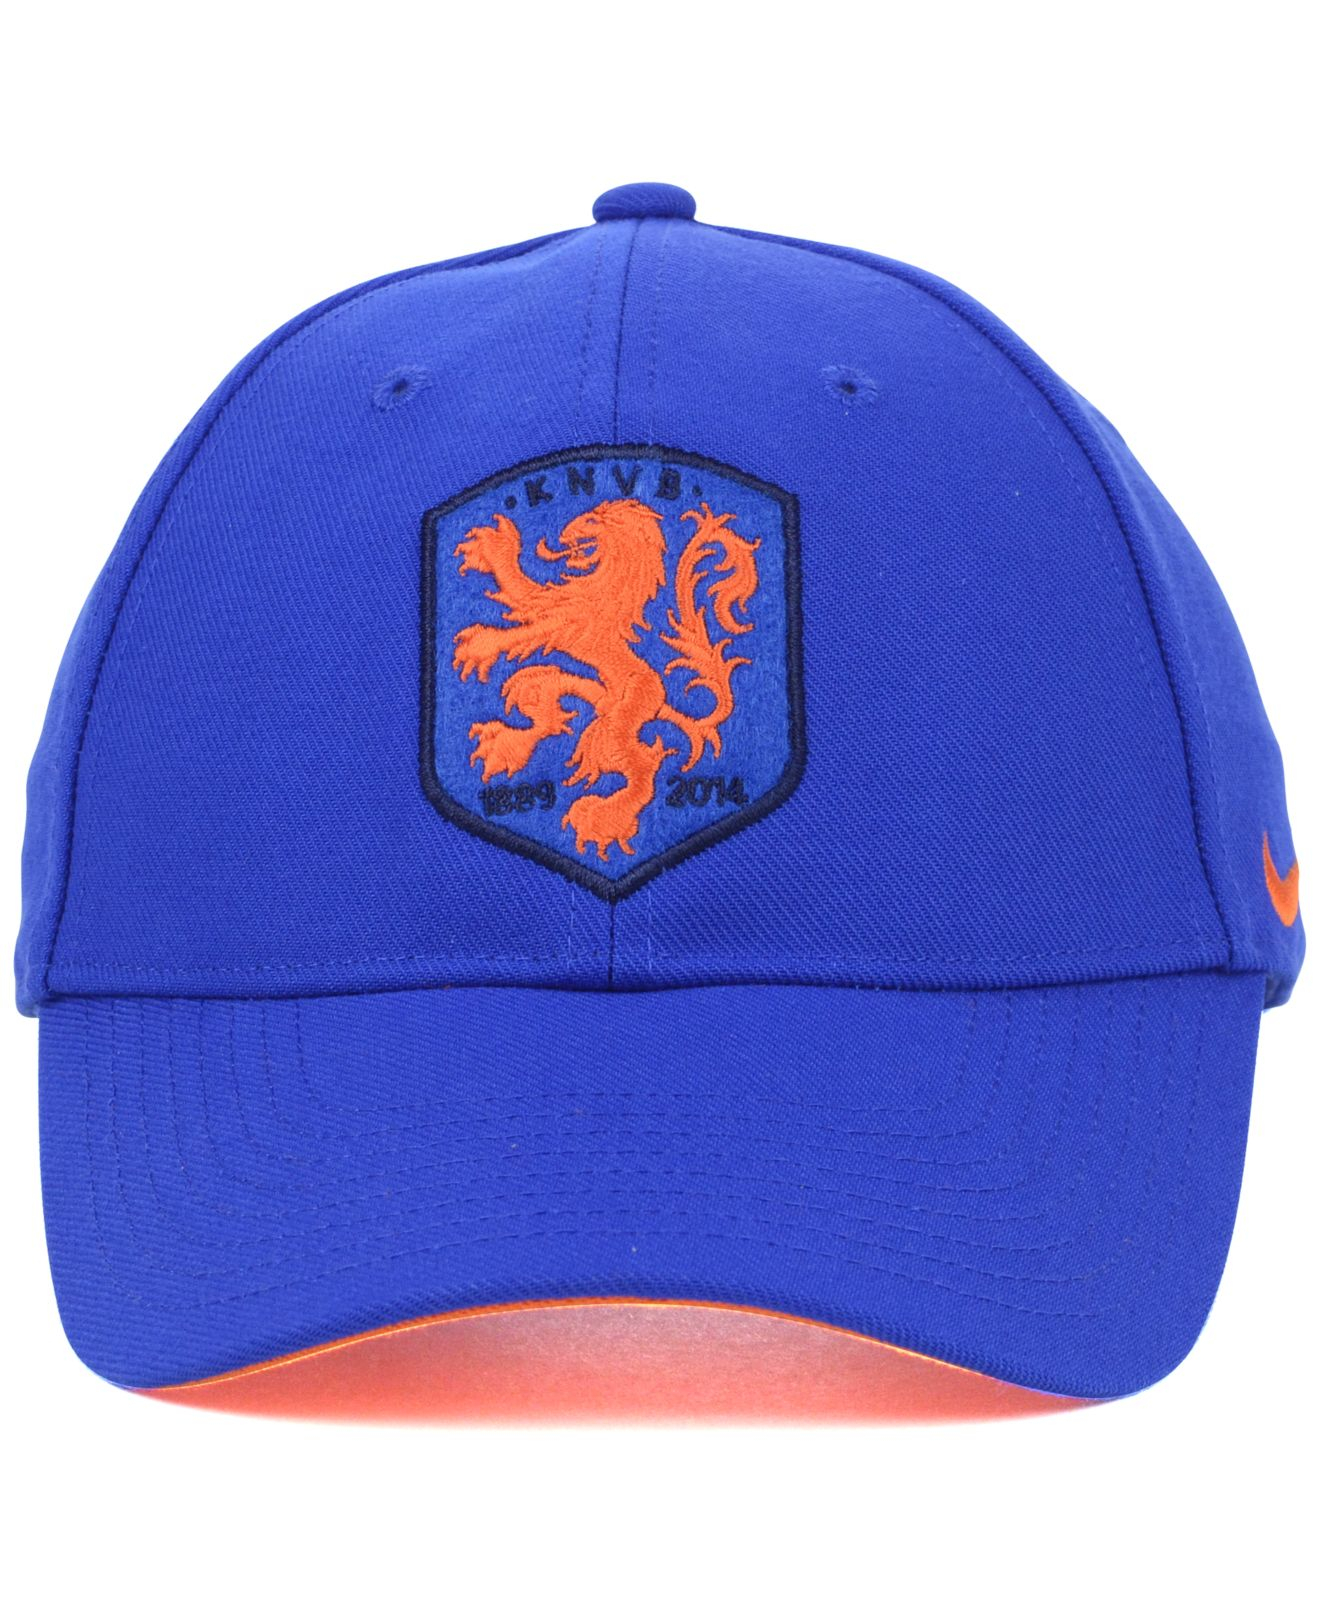 651acb8f9dd Lyst - Nike Netherlands World Cup National Team Core Cap in Blue for Men